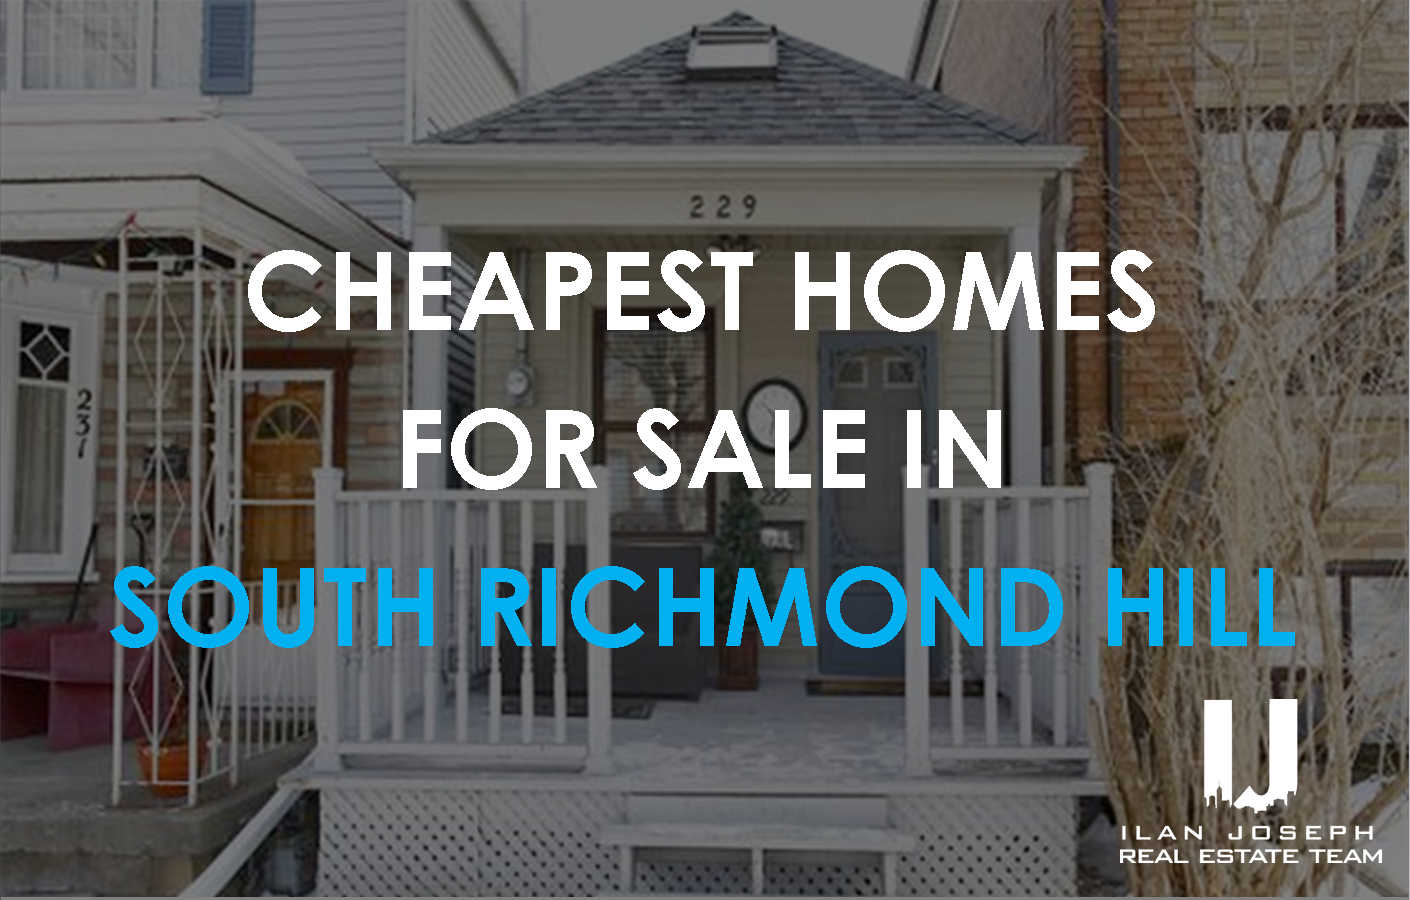 10 lowest priced homes for sale in richmond hill